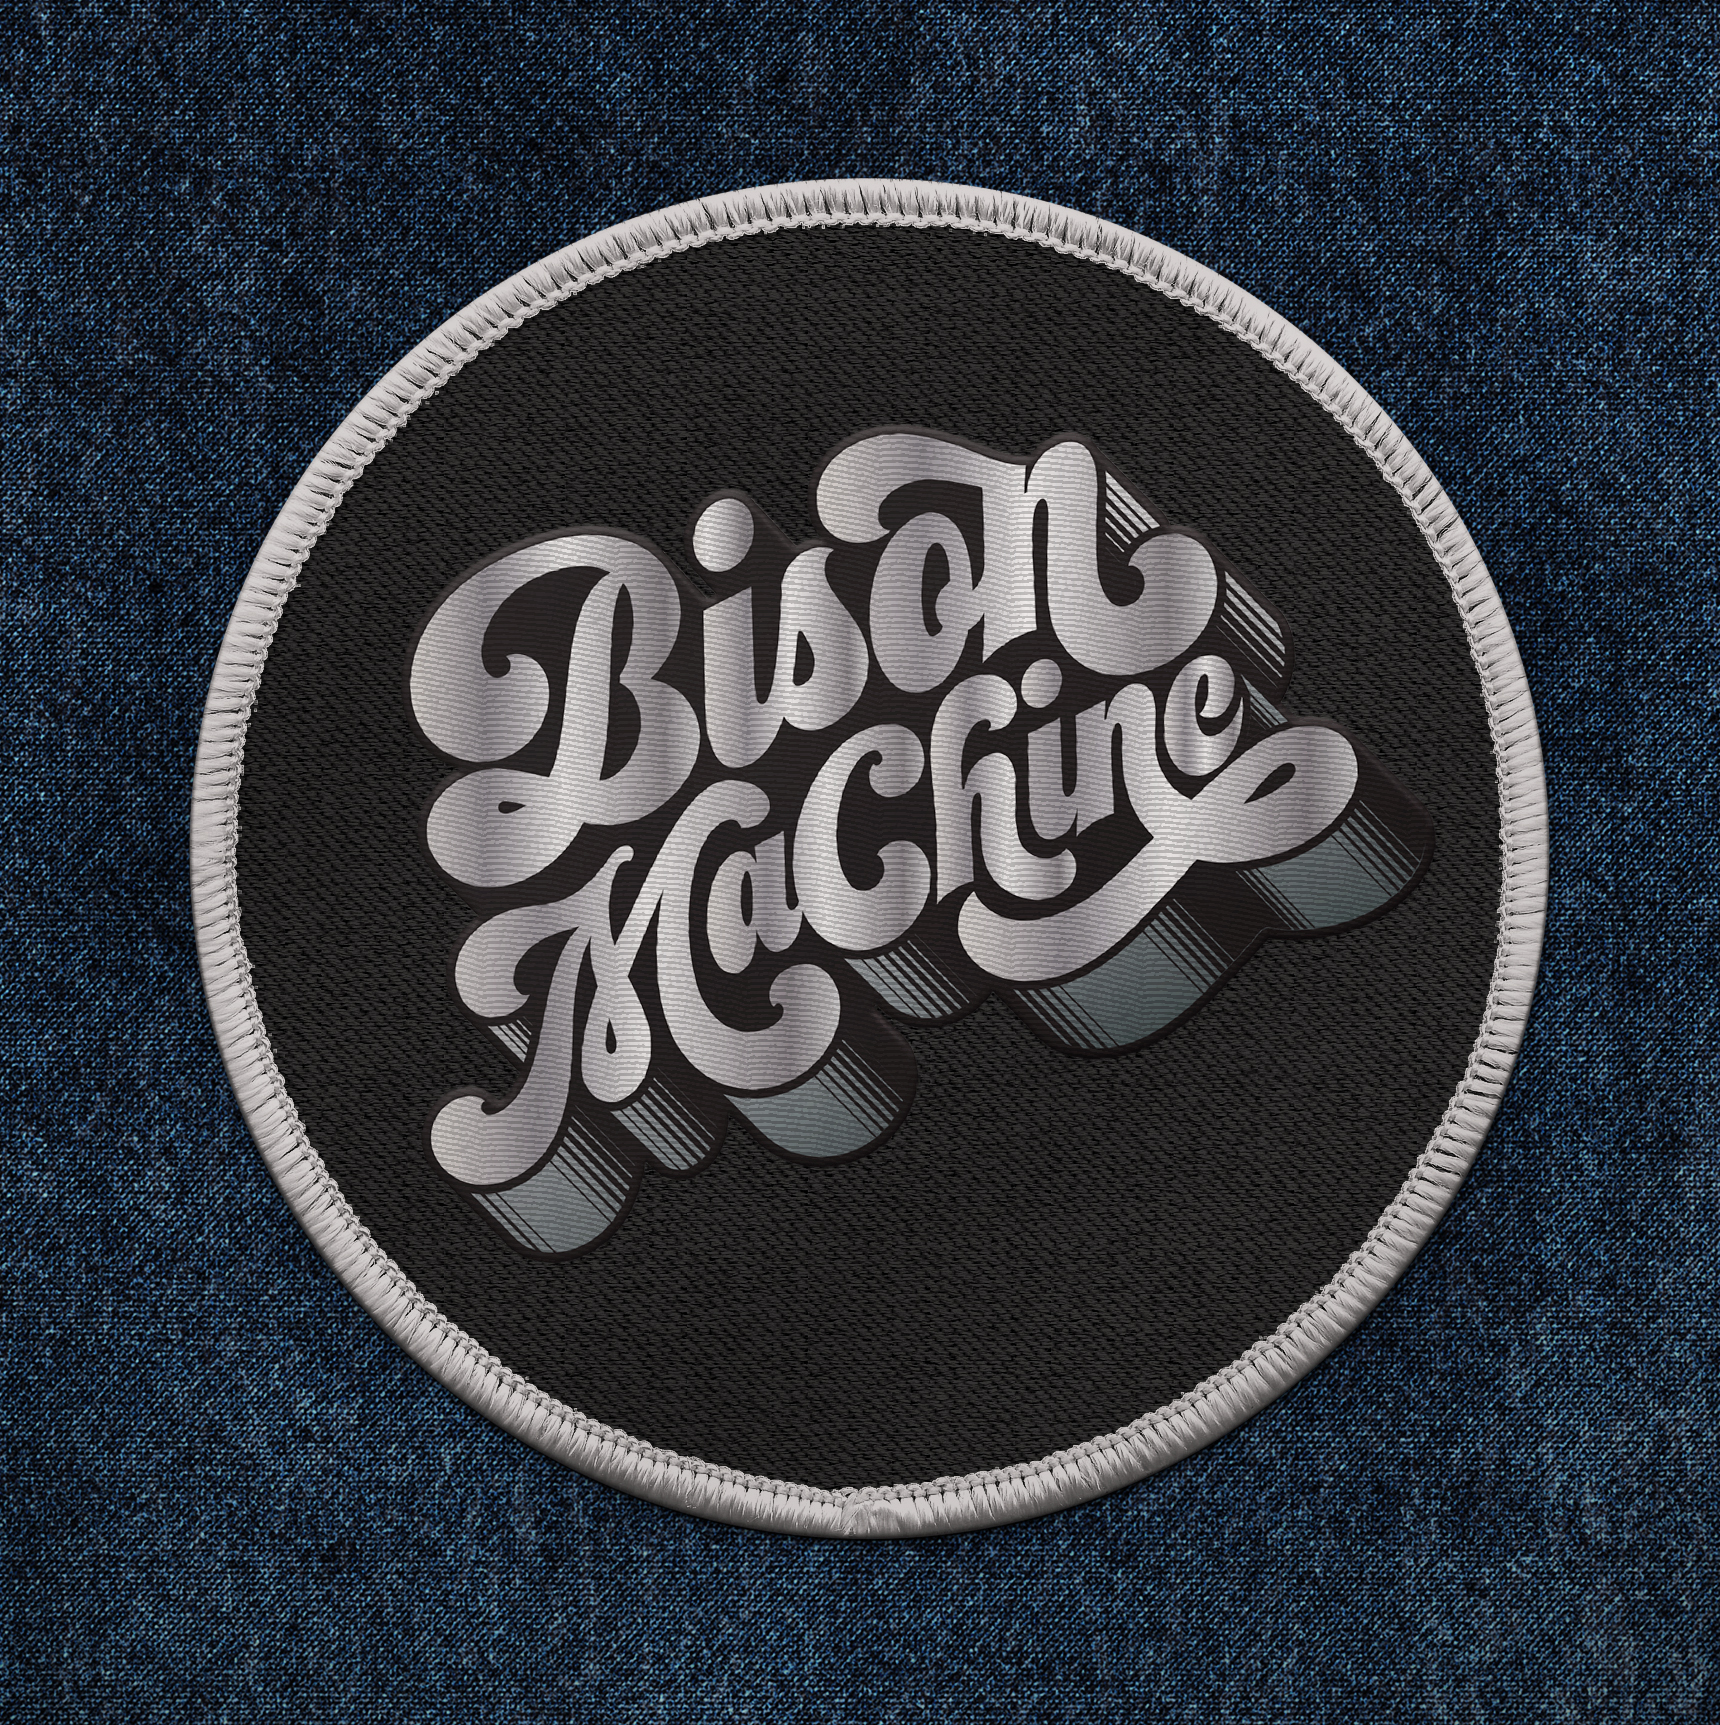 Bison Machine Patch.jpg